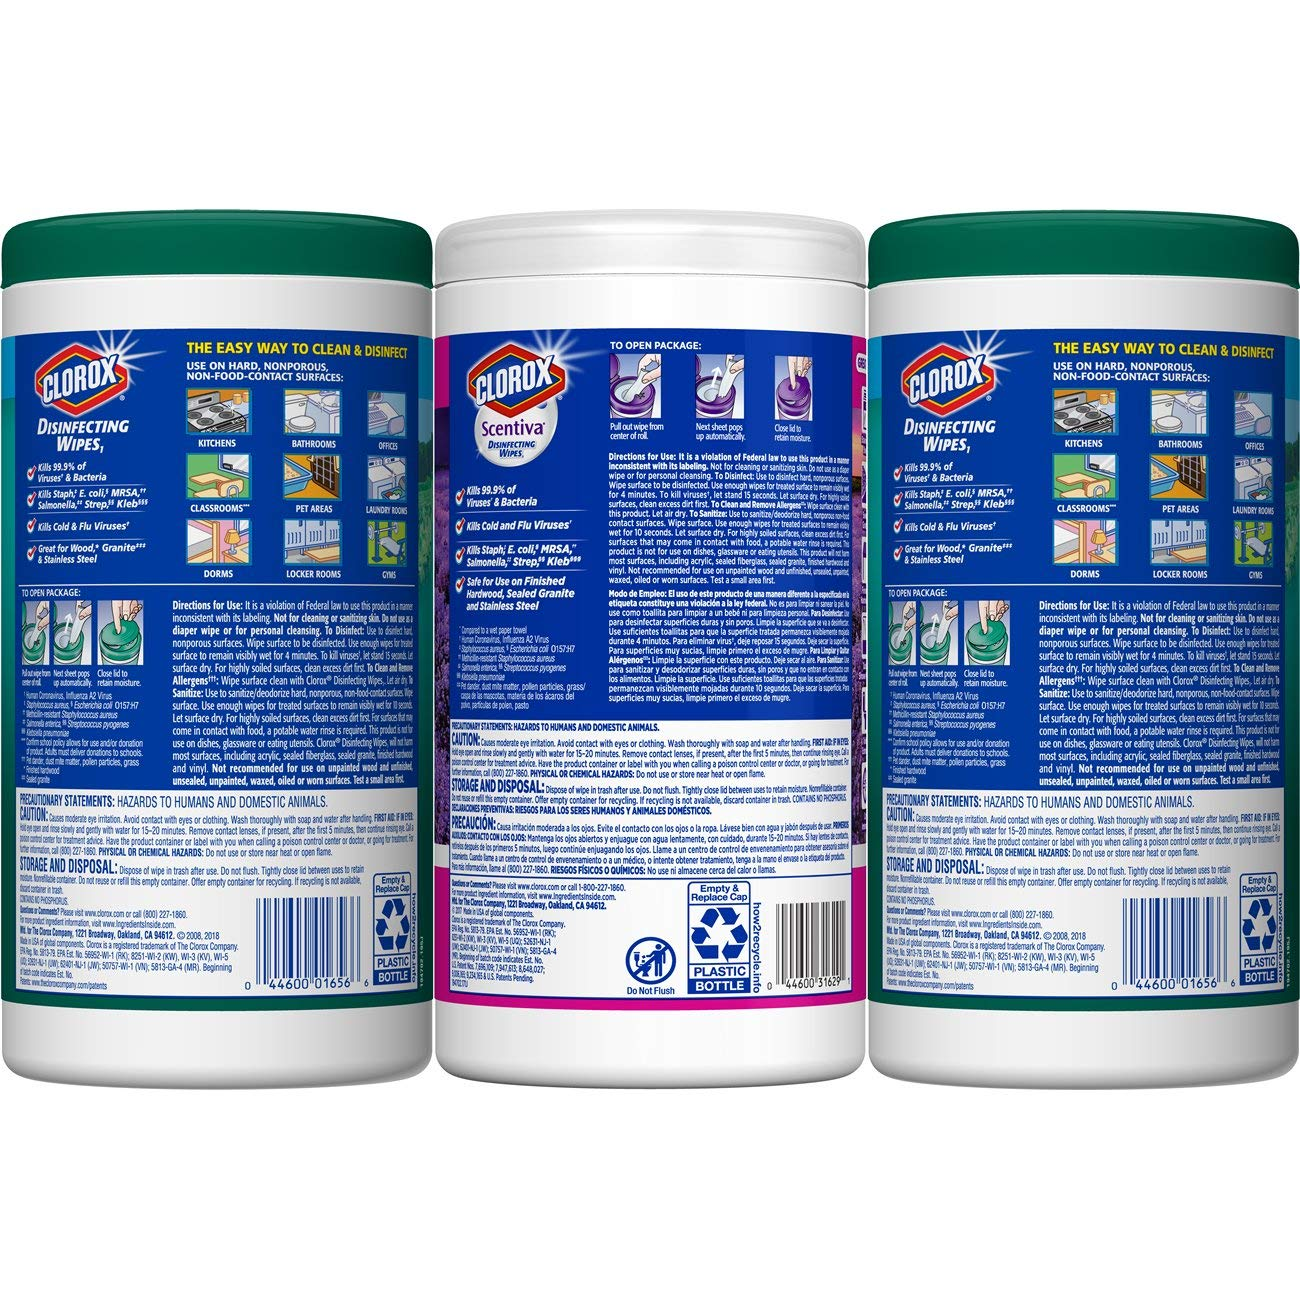 Clorox Disinfecting Wipes Value Pack, Bleach Free Cleaning Wipes, 3 Pack by Clorox (Image #7)